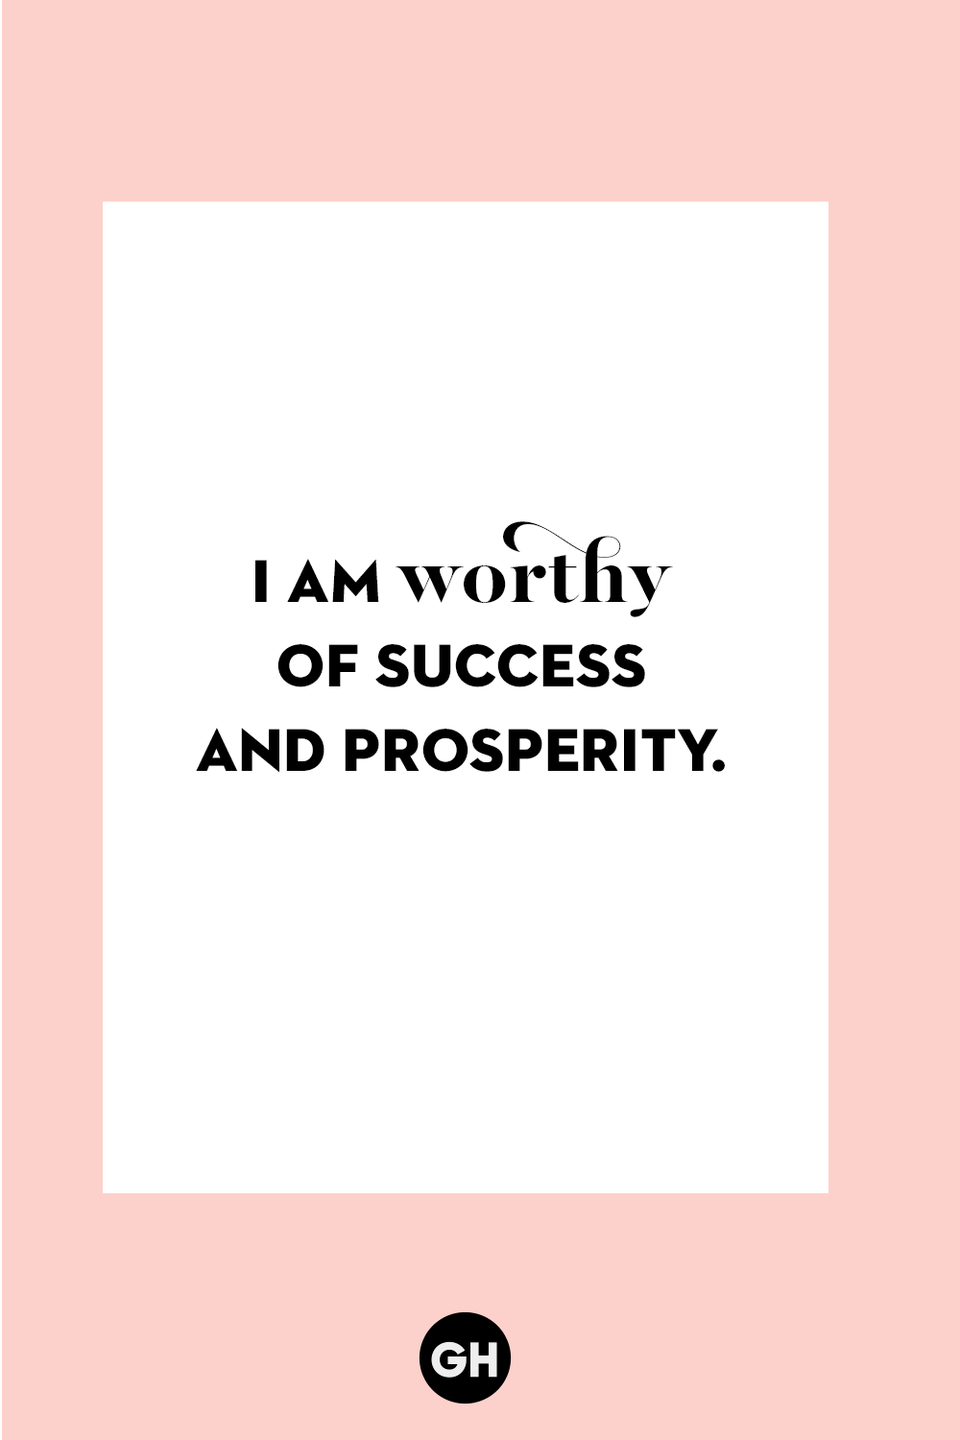 <p>I am worthy of success and prosperity.</p>